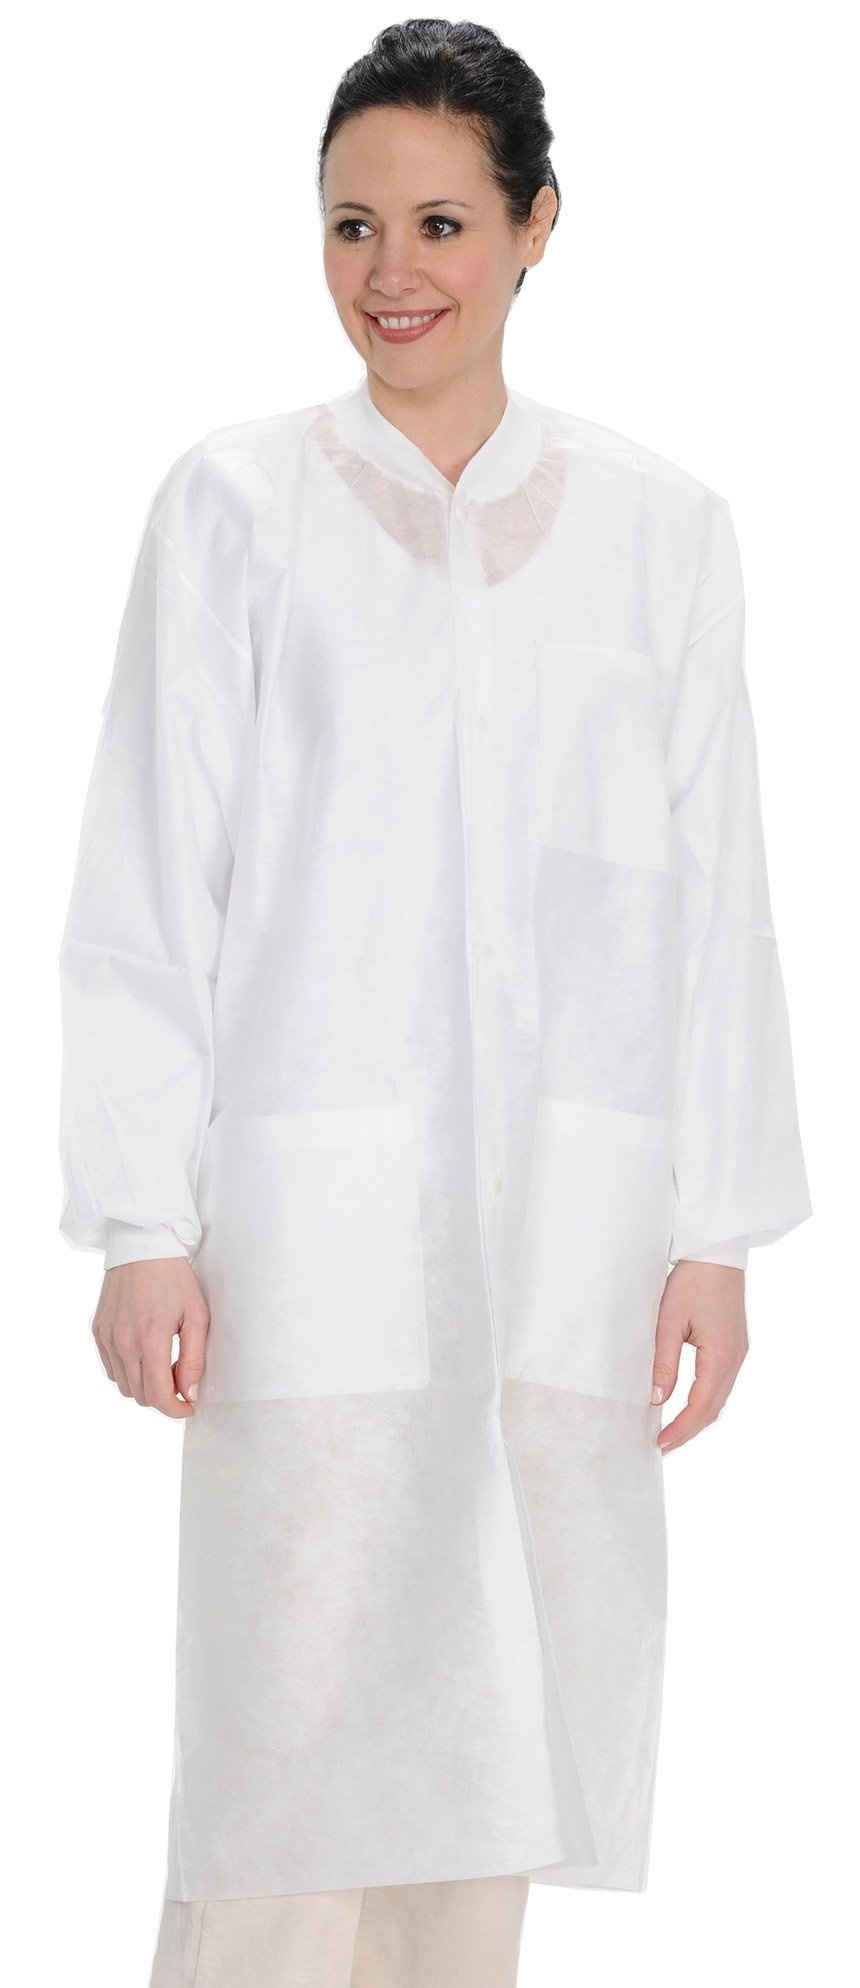 ValuMax 3560WH4XL Easy Breathe Cool and Strong, No-Wrinkle, Professional Disposable SMS Knee Length Lab Coat, White, 4XL, Pack of 10